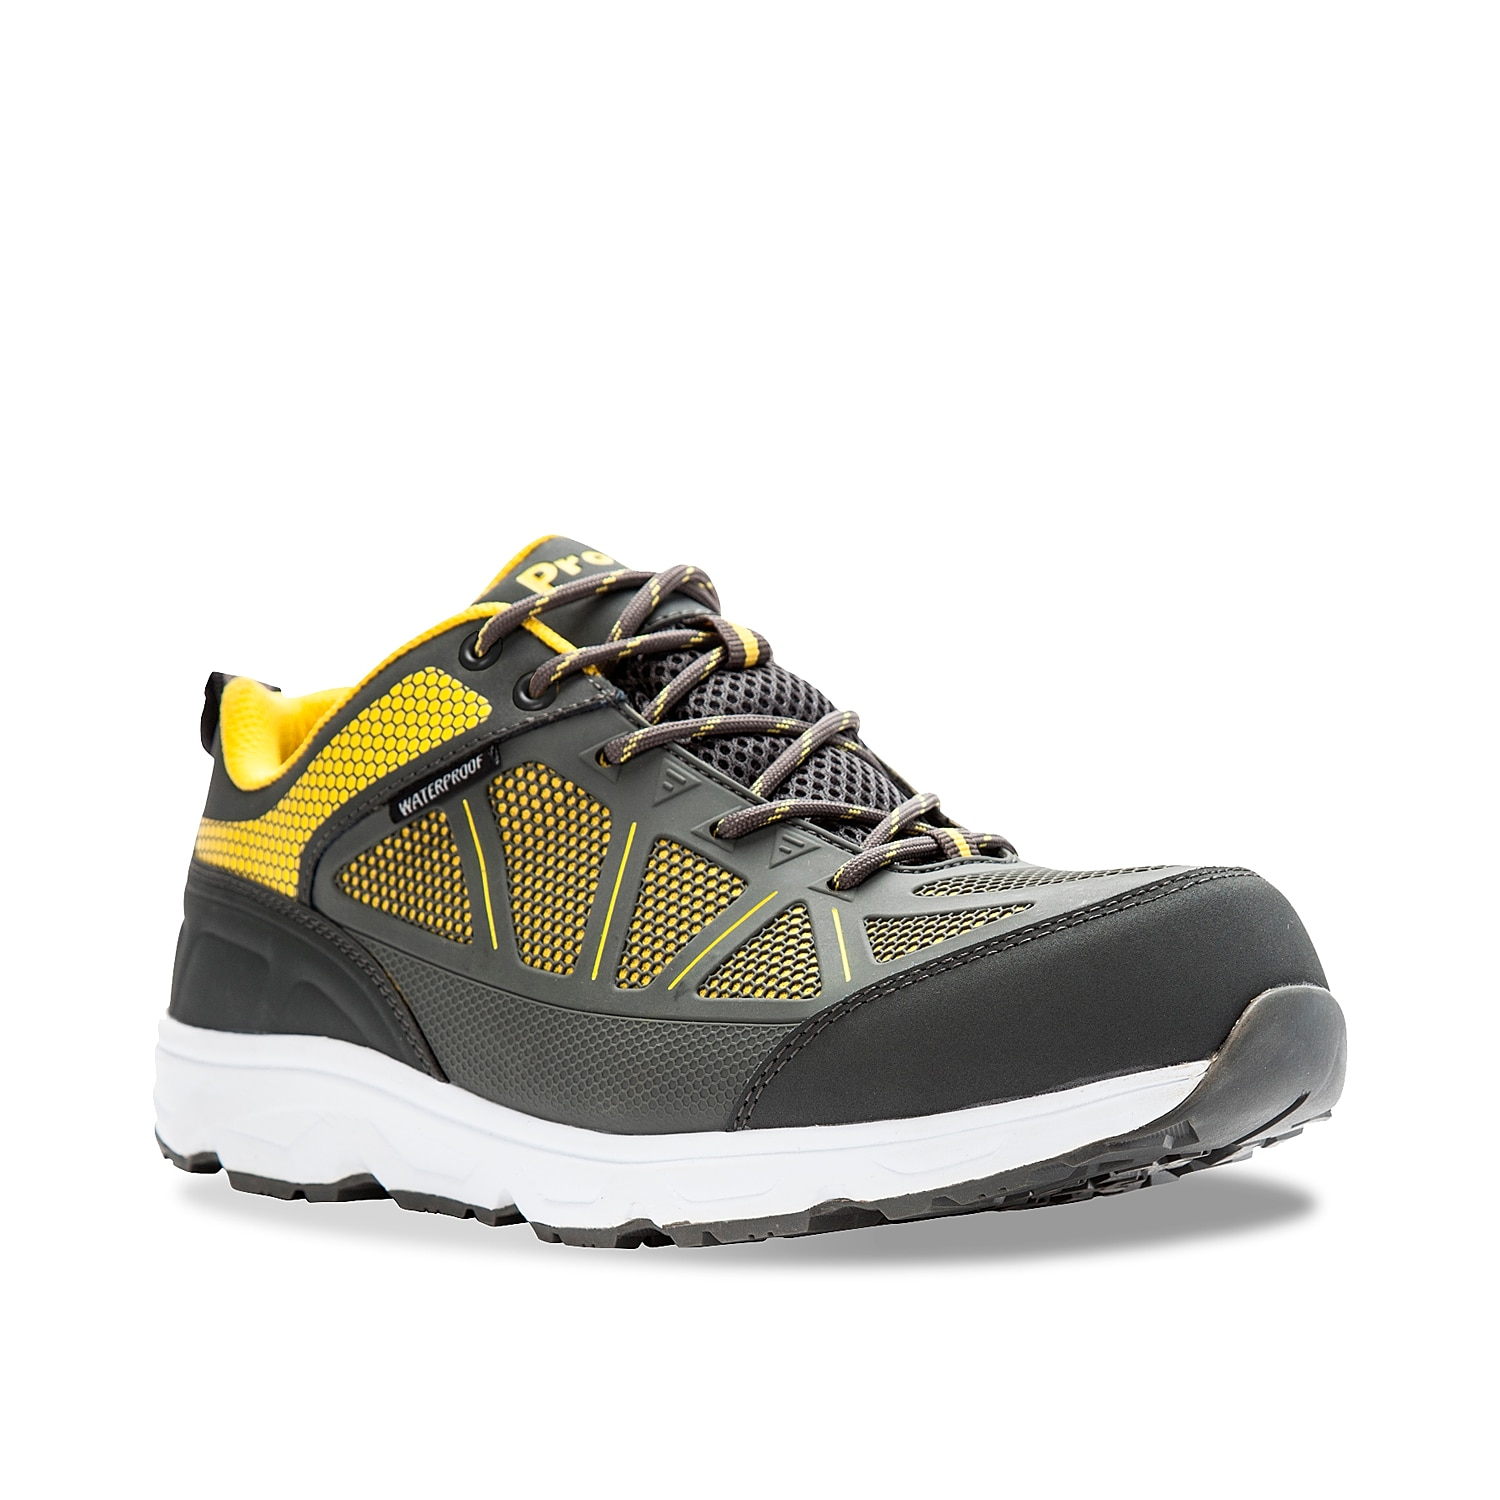 Walk those tough terrains any day of the week when wearing the men\\\'s Seely trail shoe from Propet. This low-top features a waterproof construction and a composite toe that will keep you feeling safe within every stride you take!